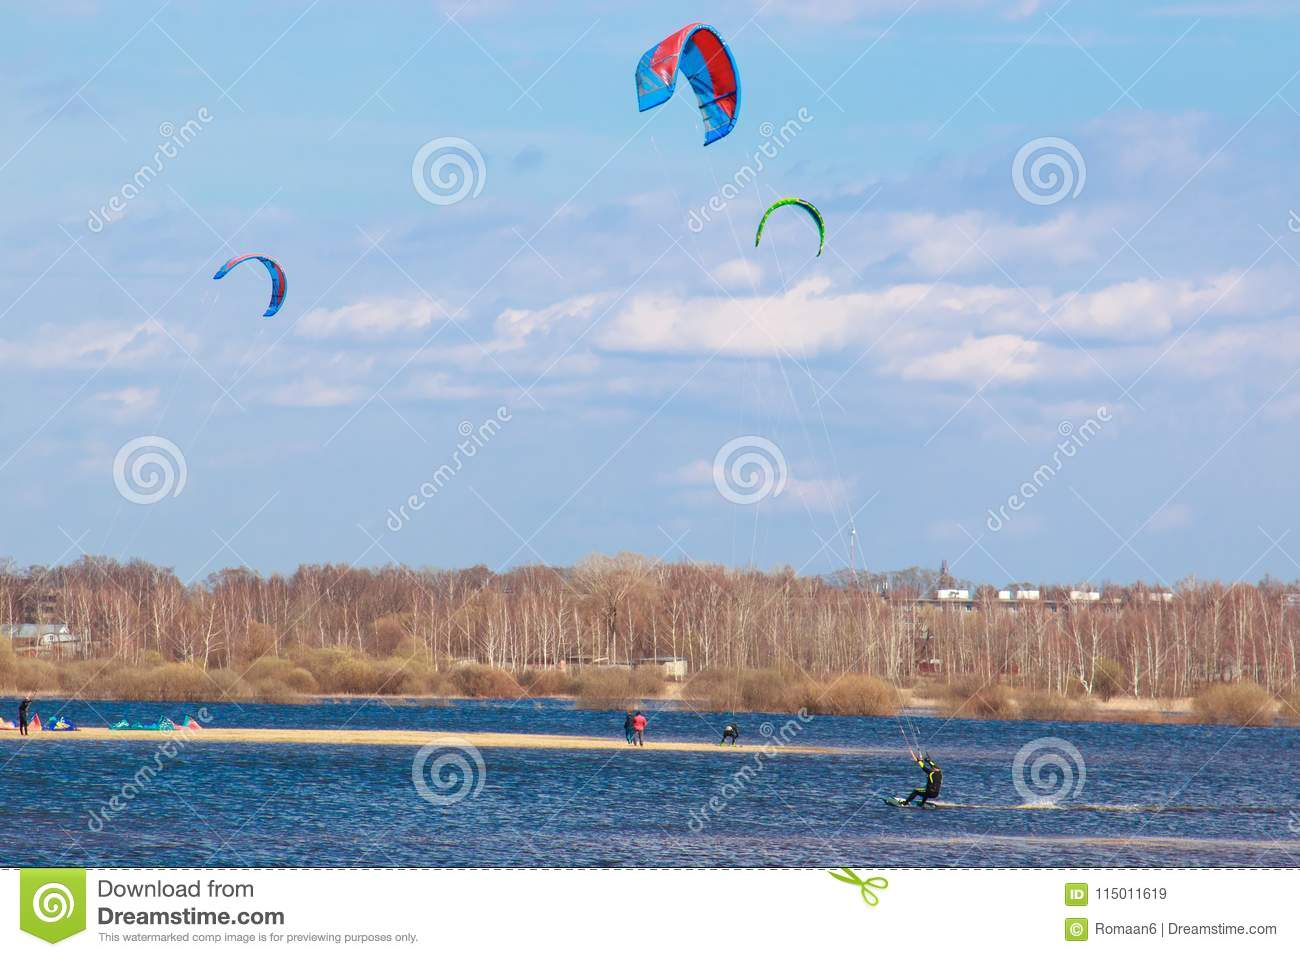 Kitesurfing in the flooded meadows during the high water on a bright sunny day.